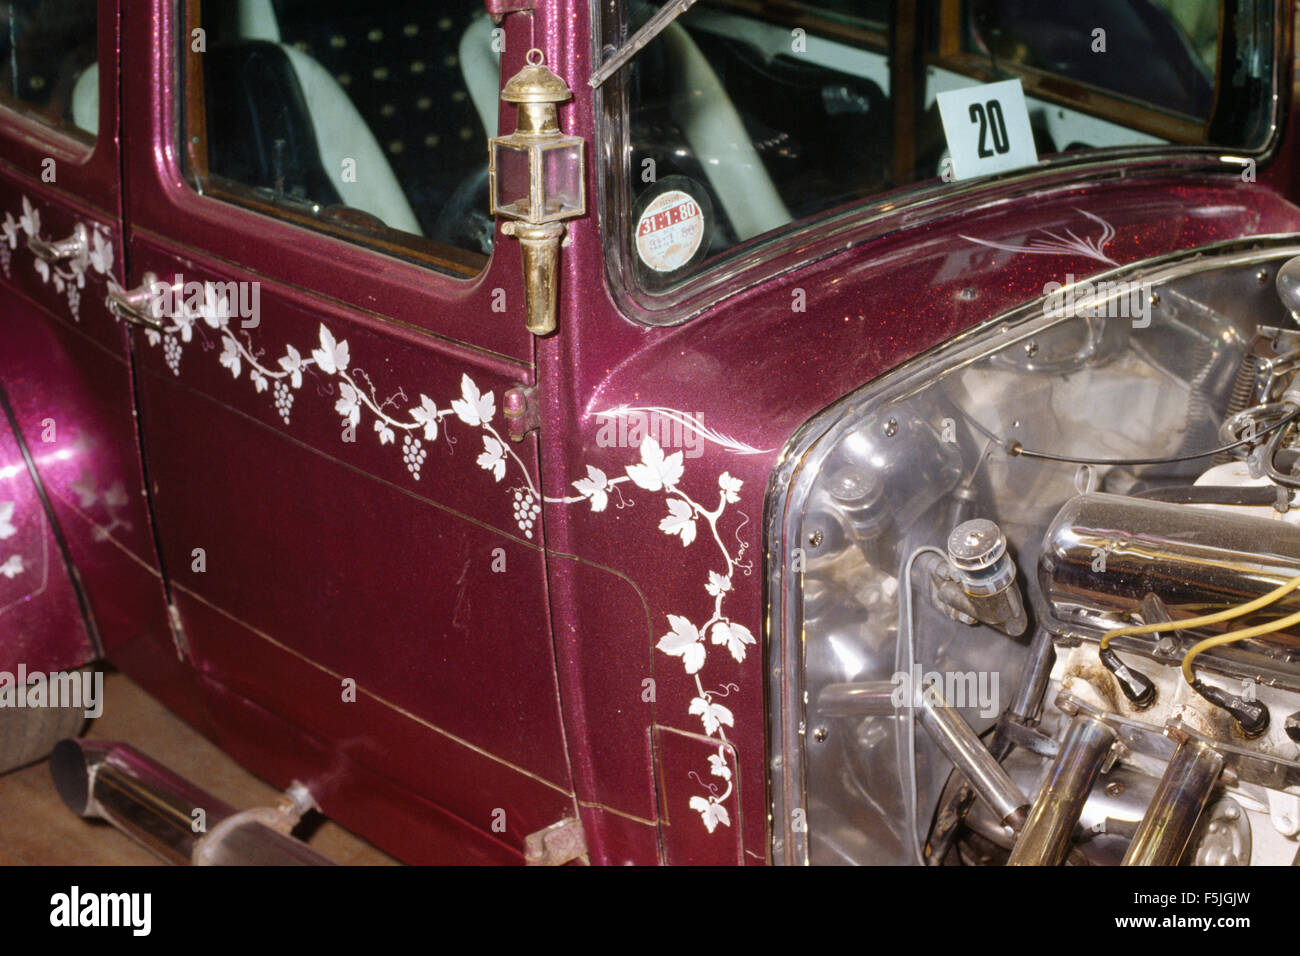 Close-up of a highly decorated pink vintage car Stock Photo